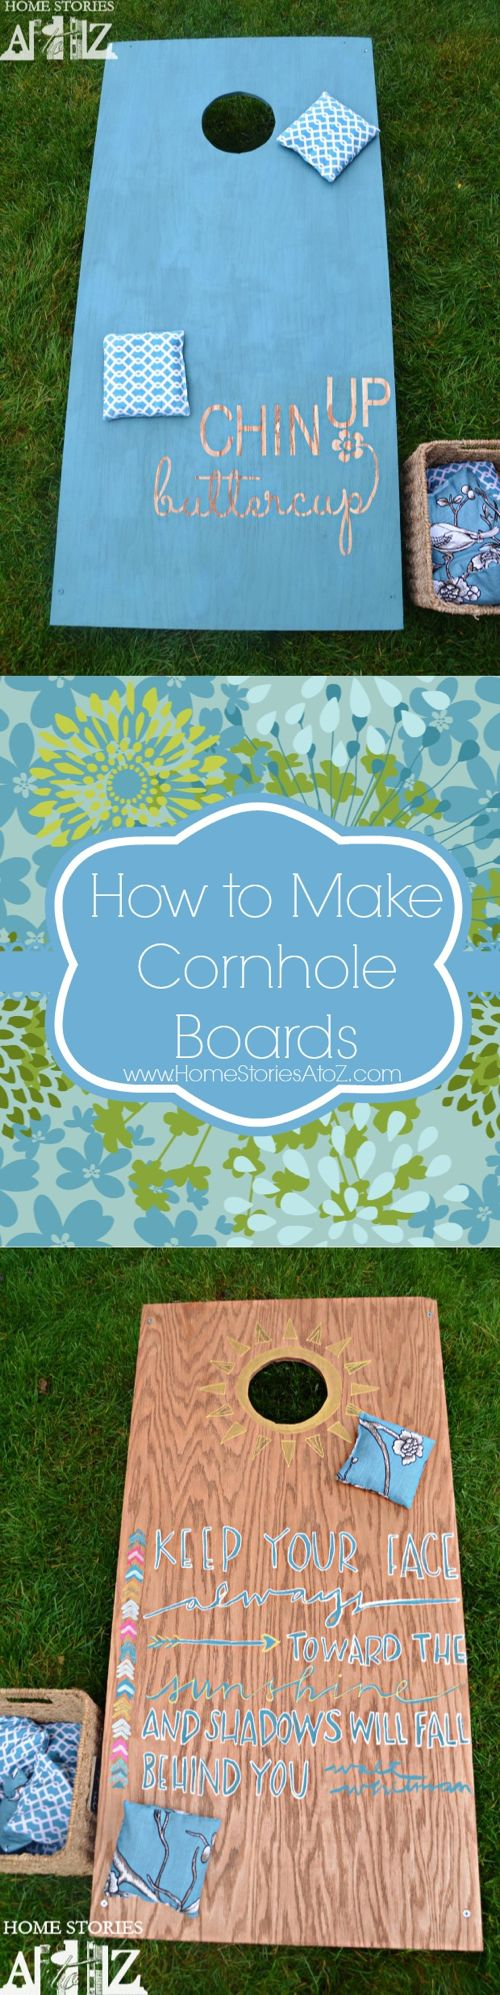 how to build cornhole board